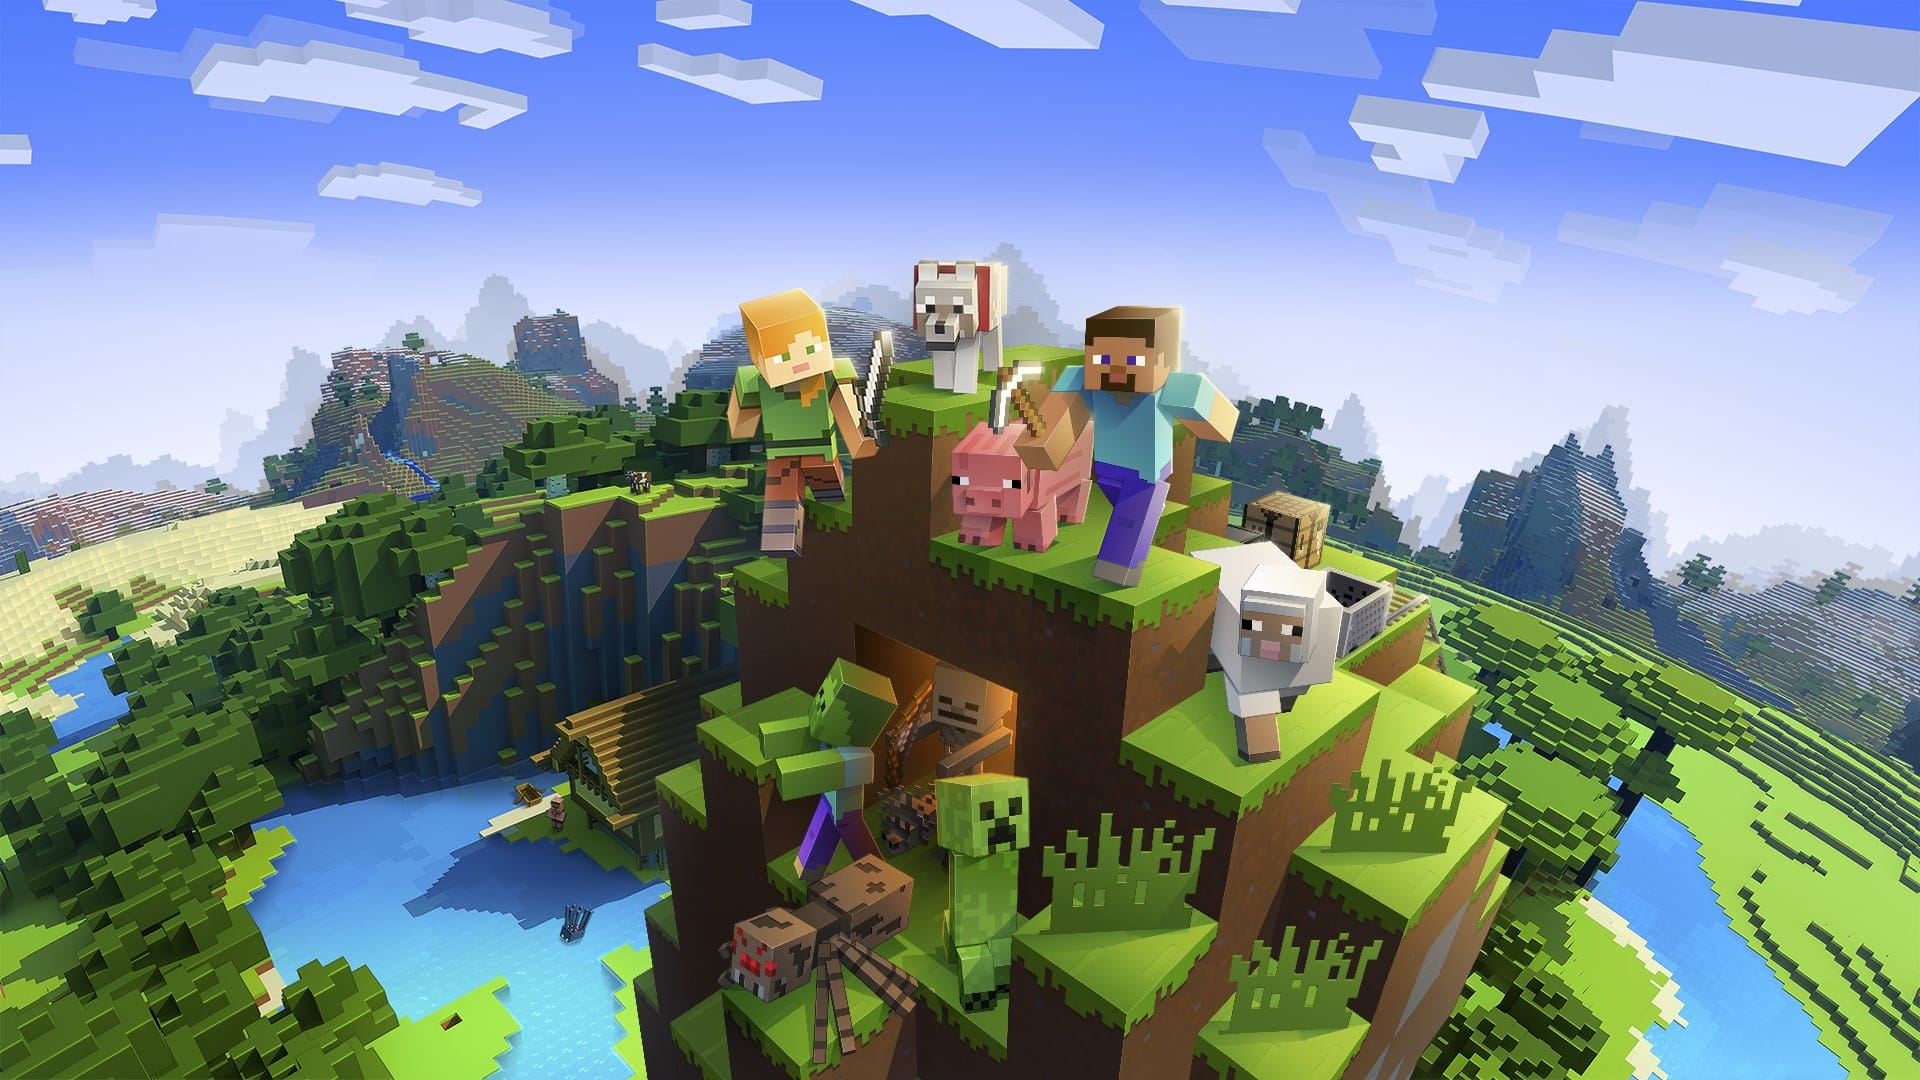 Minecraft Gets Full PS VR Support in a Free Update This Month